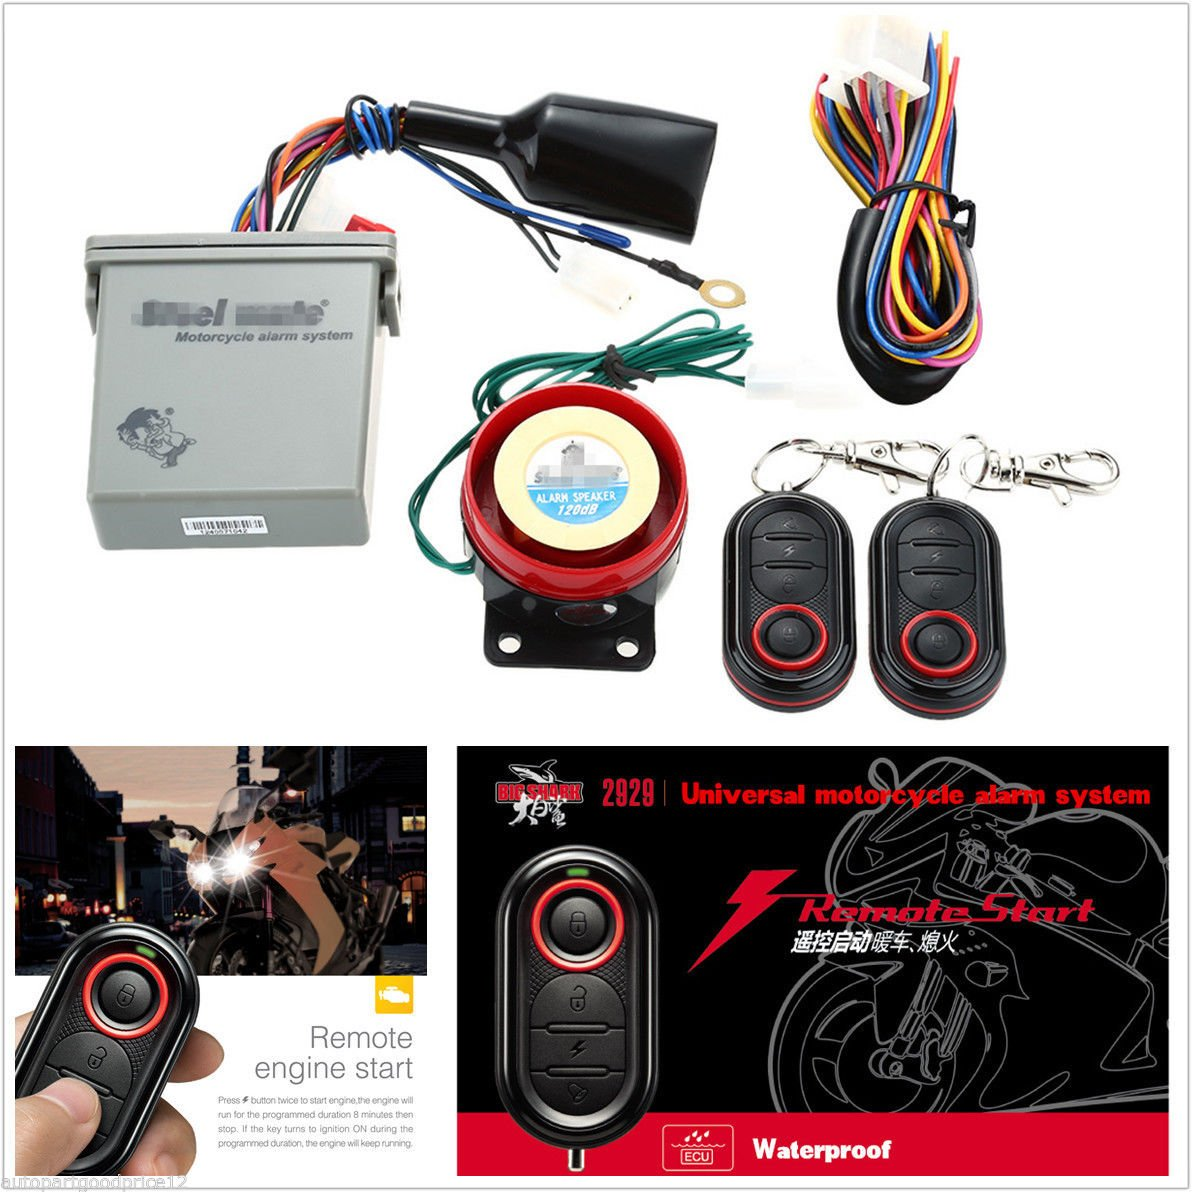 Scooter Motorcycle Anti Theft Alarm System Remote Engine Remot Motor Start With Transmitter Sports Outdoors